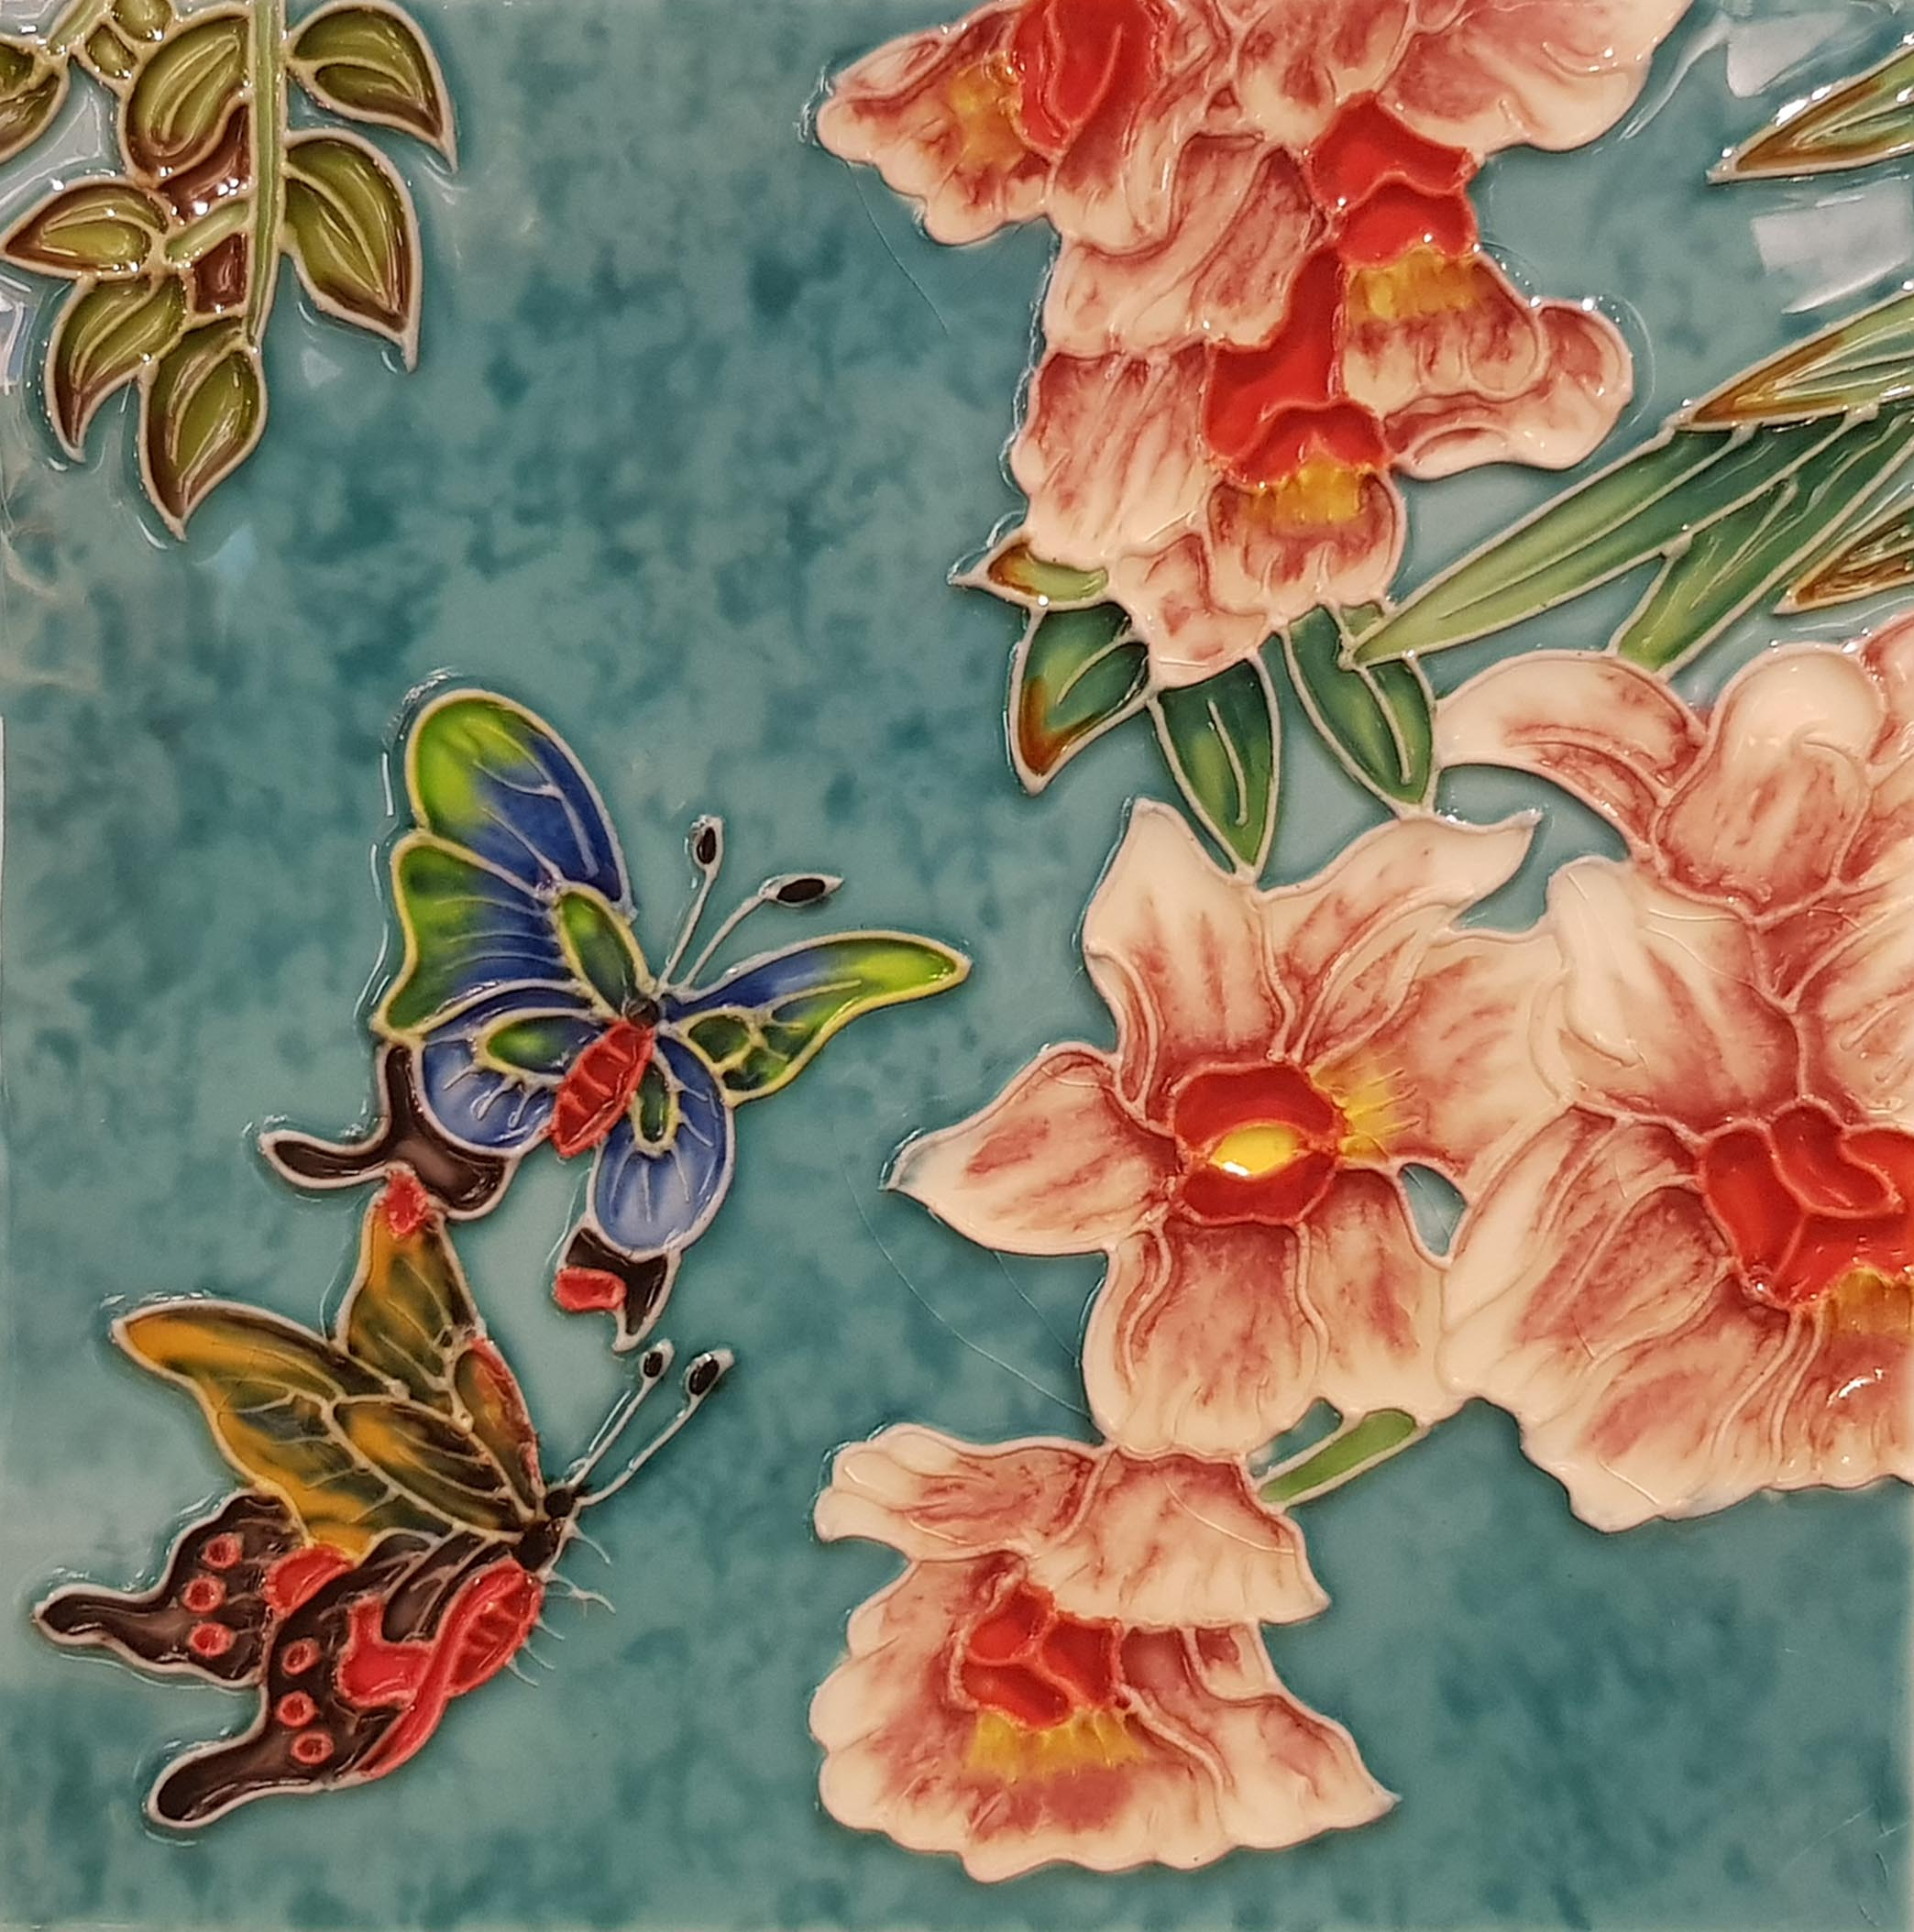 3530 Cherry Blossom and Butterfly 30cm x 30cm Ceramic Tile